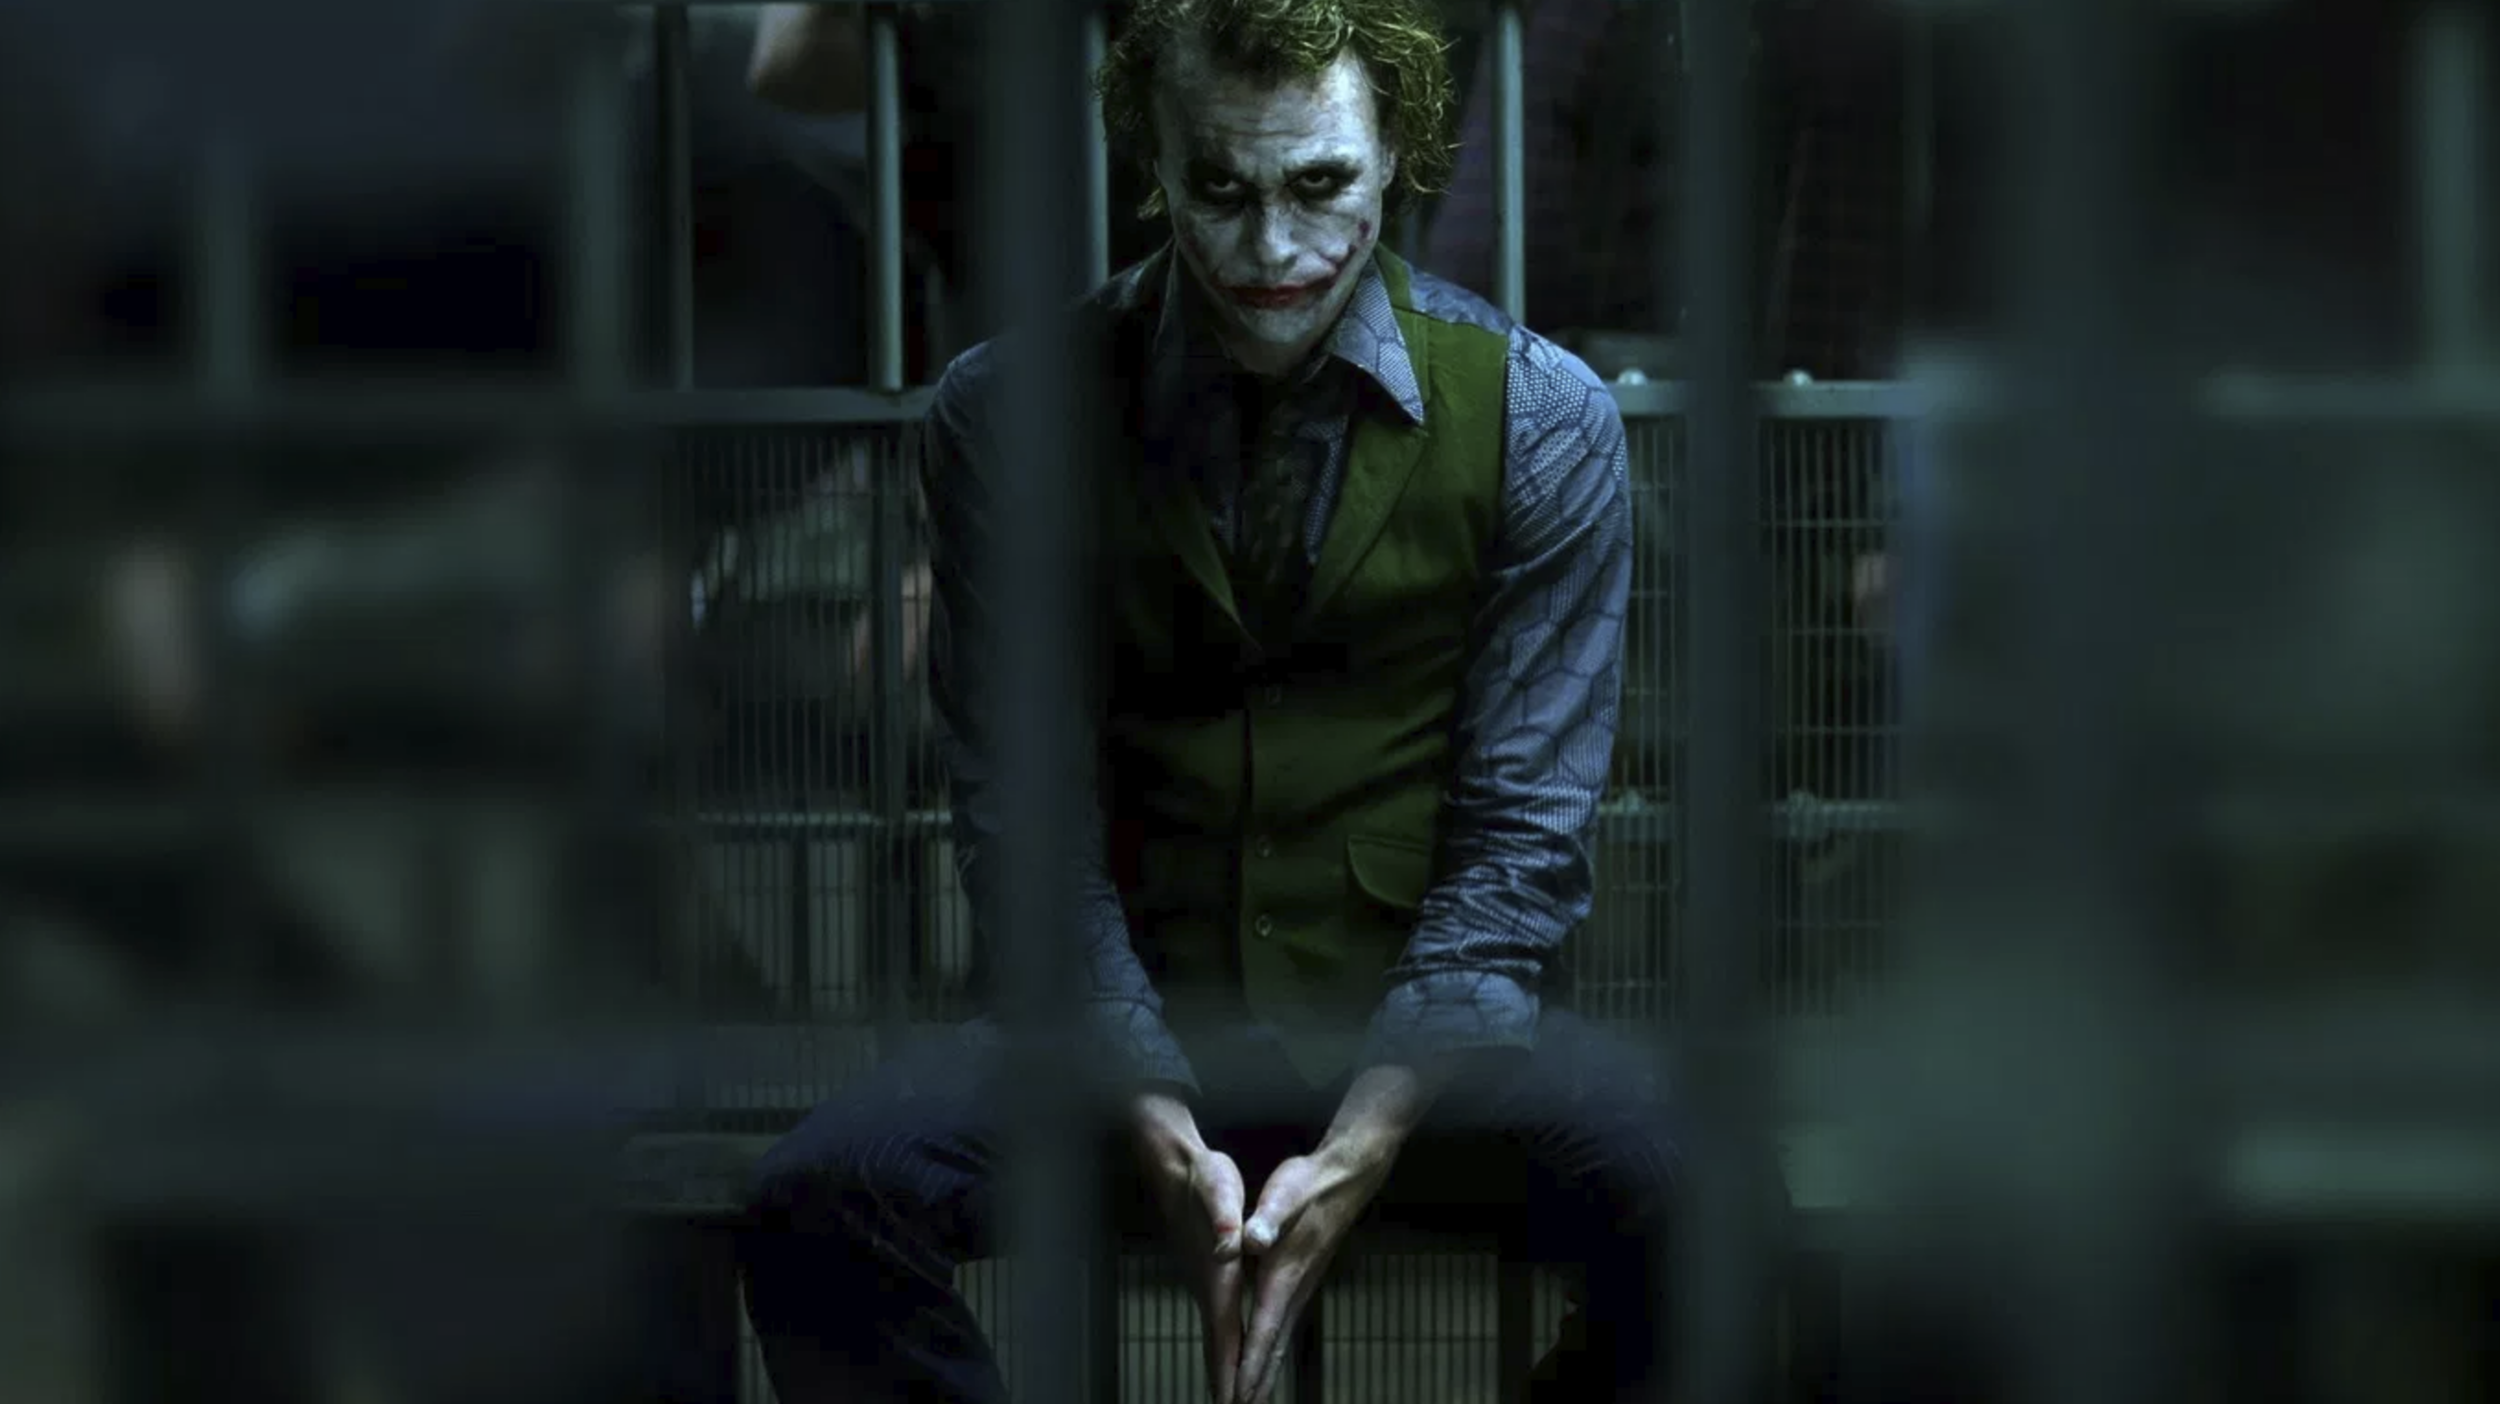 Heath Ledger as The Joker in  The Dark Knight  (2008), directed by Christopher Nolan - courtesy of Warner Bros.